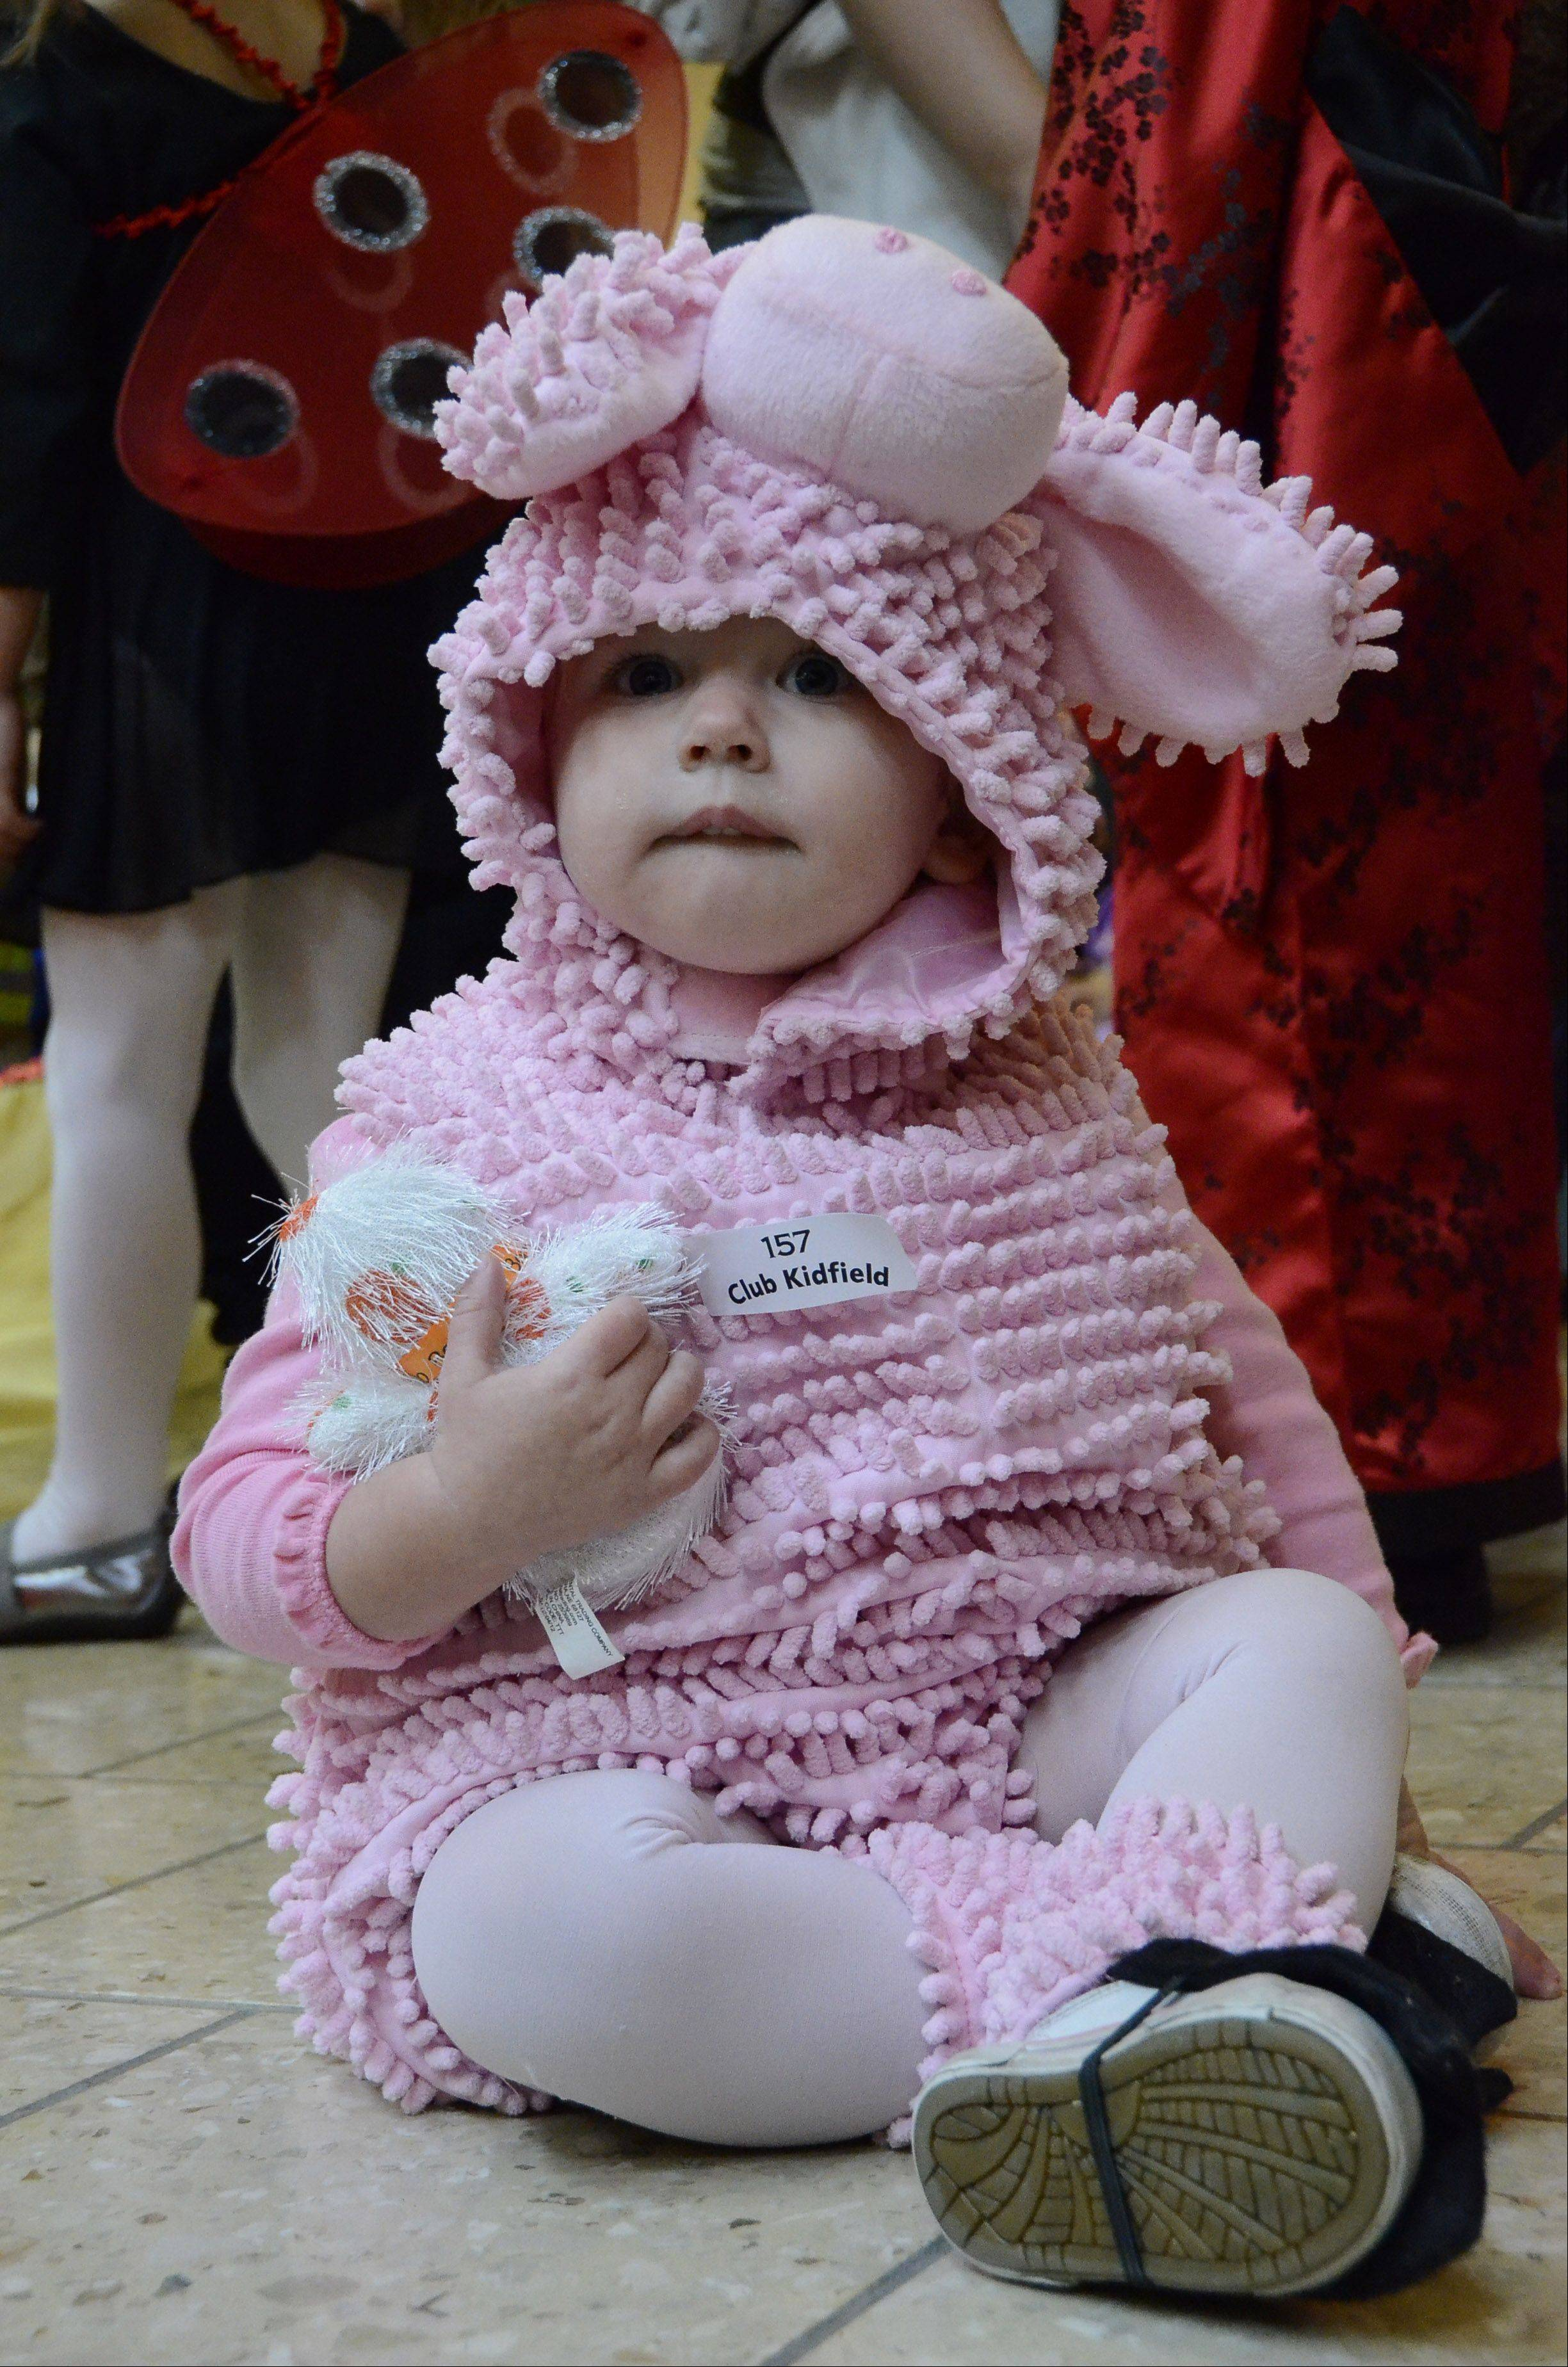 Ashley Jaski, 1, of Chicago, is dressed as a pink pig at the Halloween Bash hosted Wednesday by the Woodfield Mall in Schaumburg.